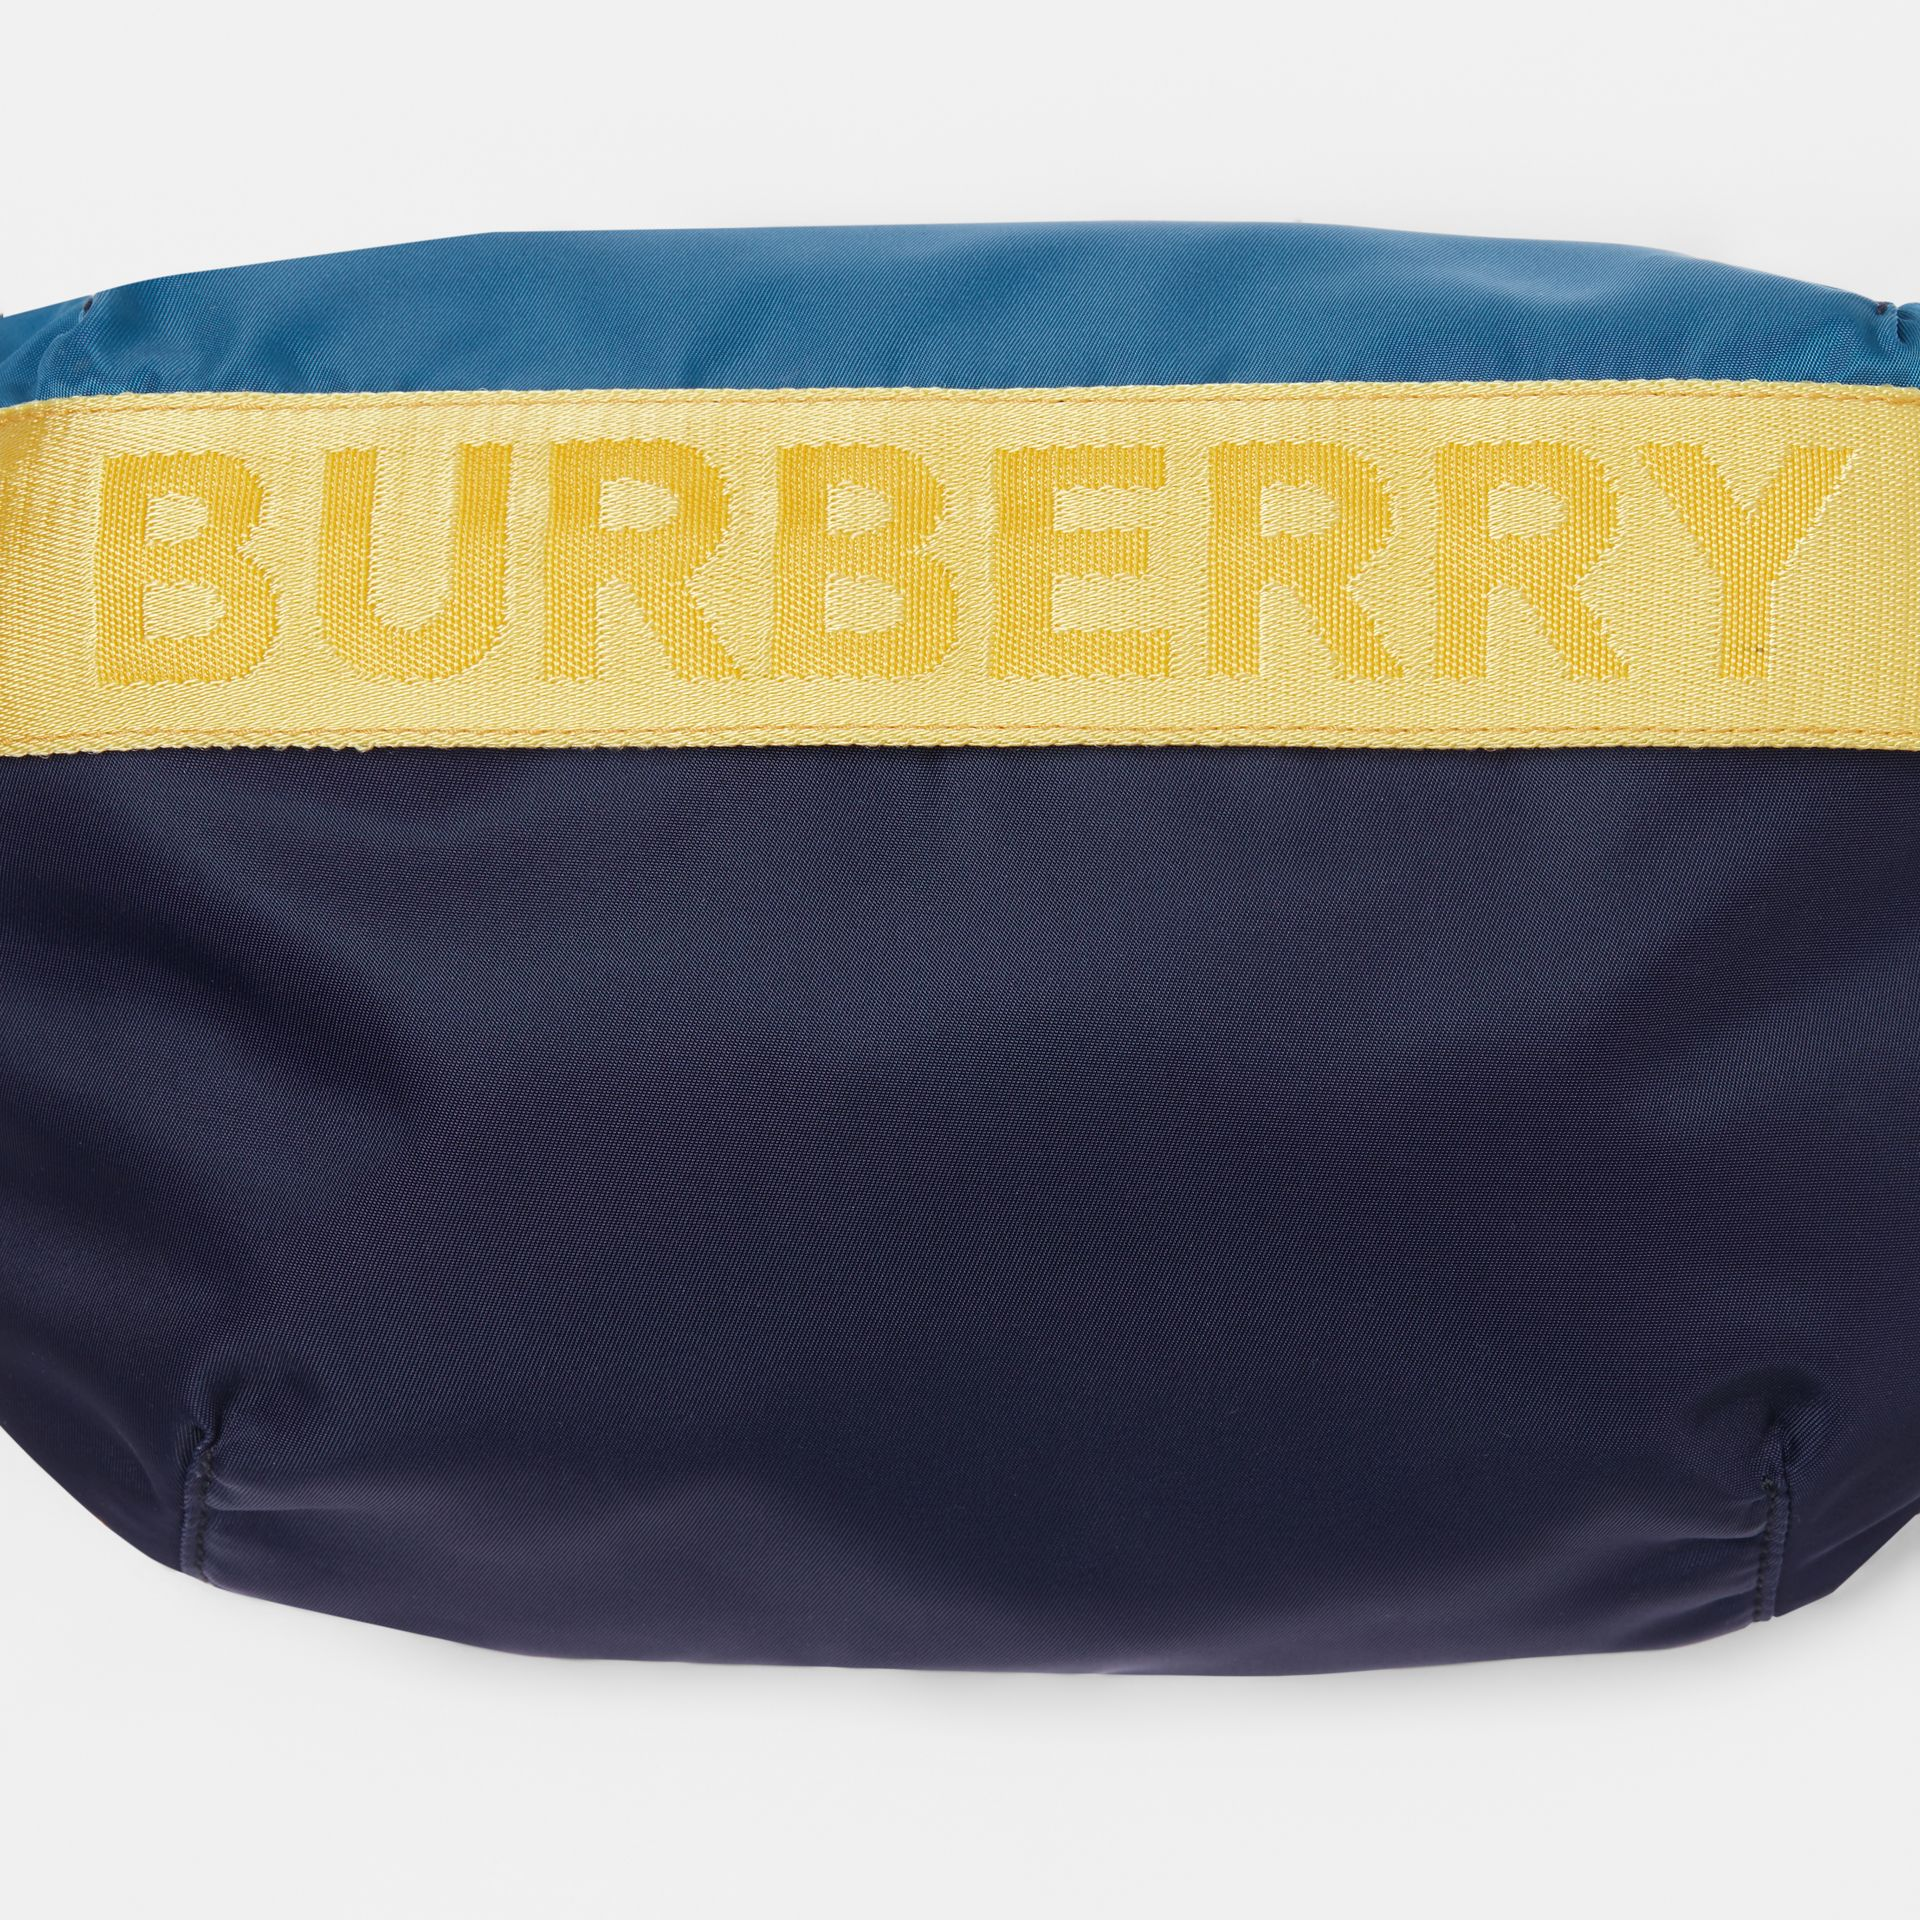 Medium Logo Detail Colour Block Bum Bag in Blue | Burberry - gallery image 1